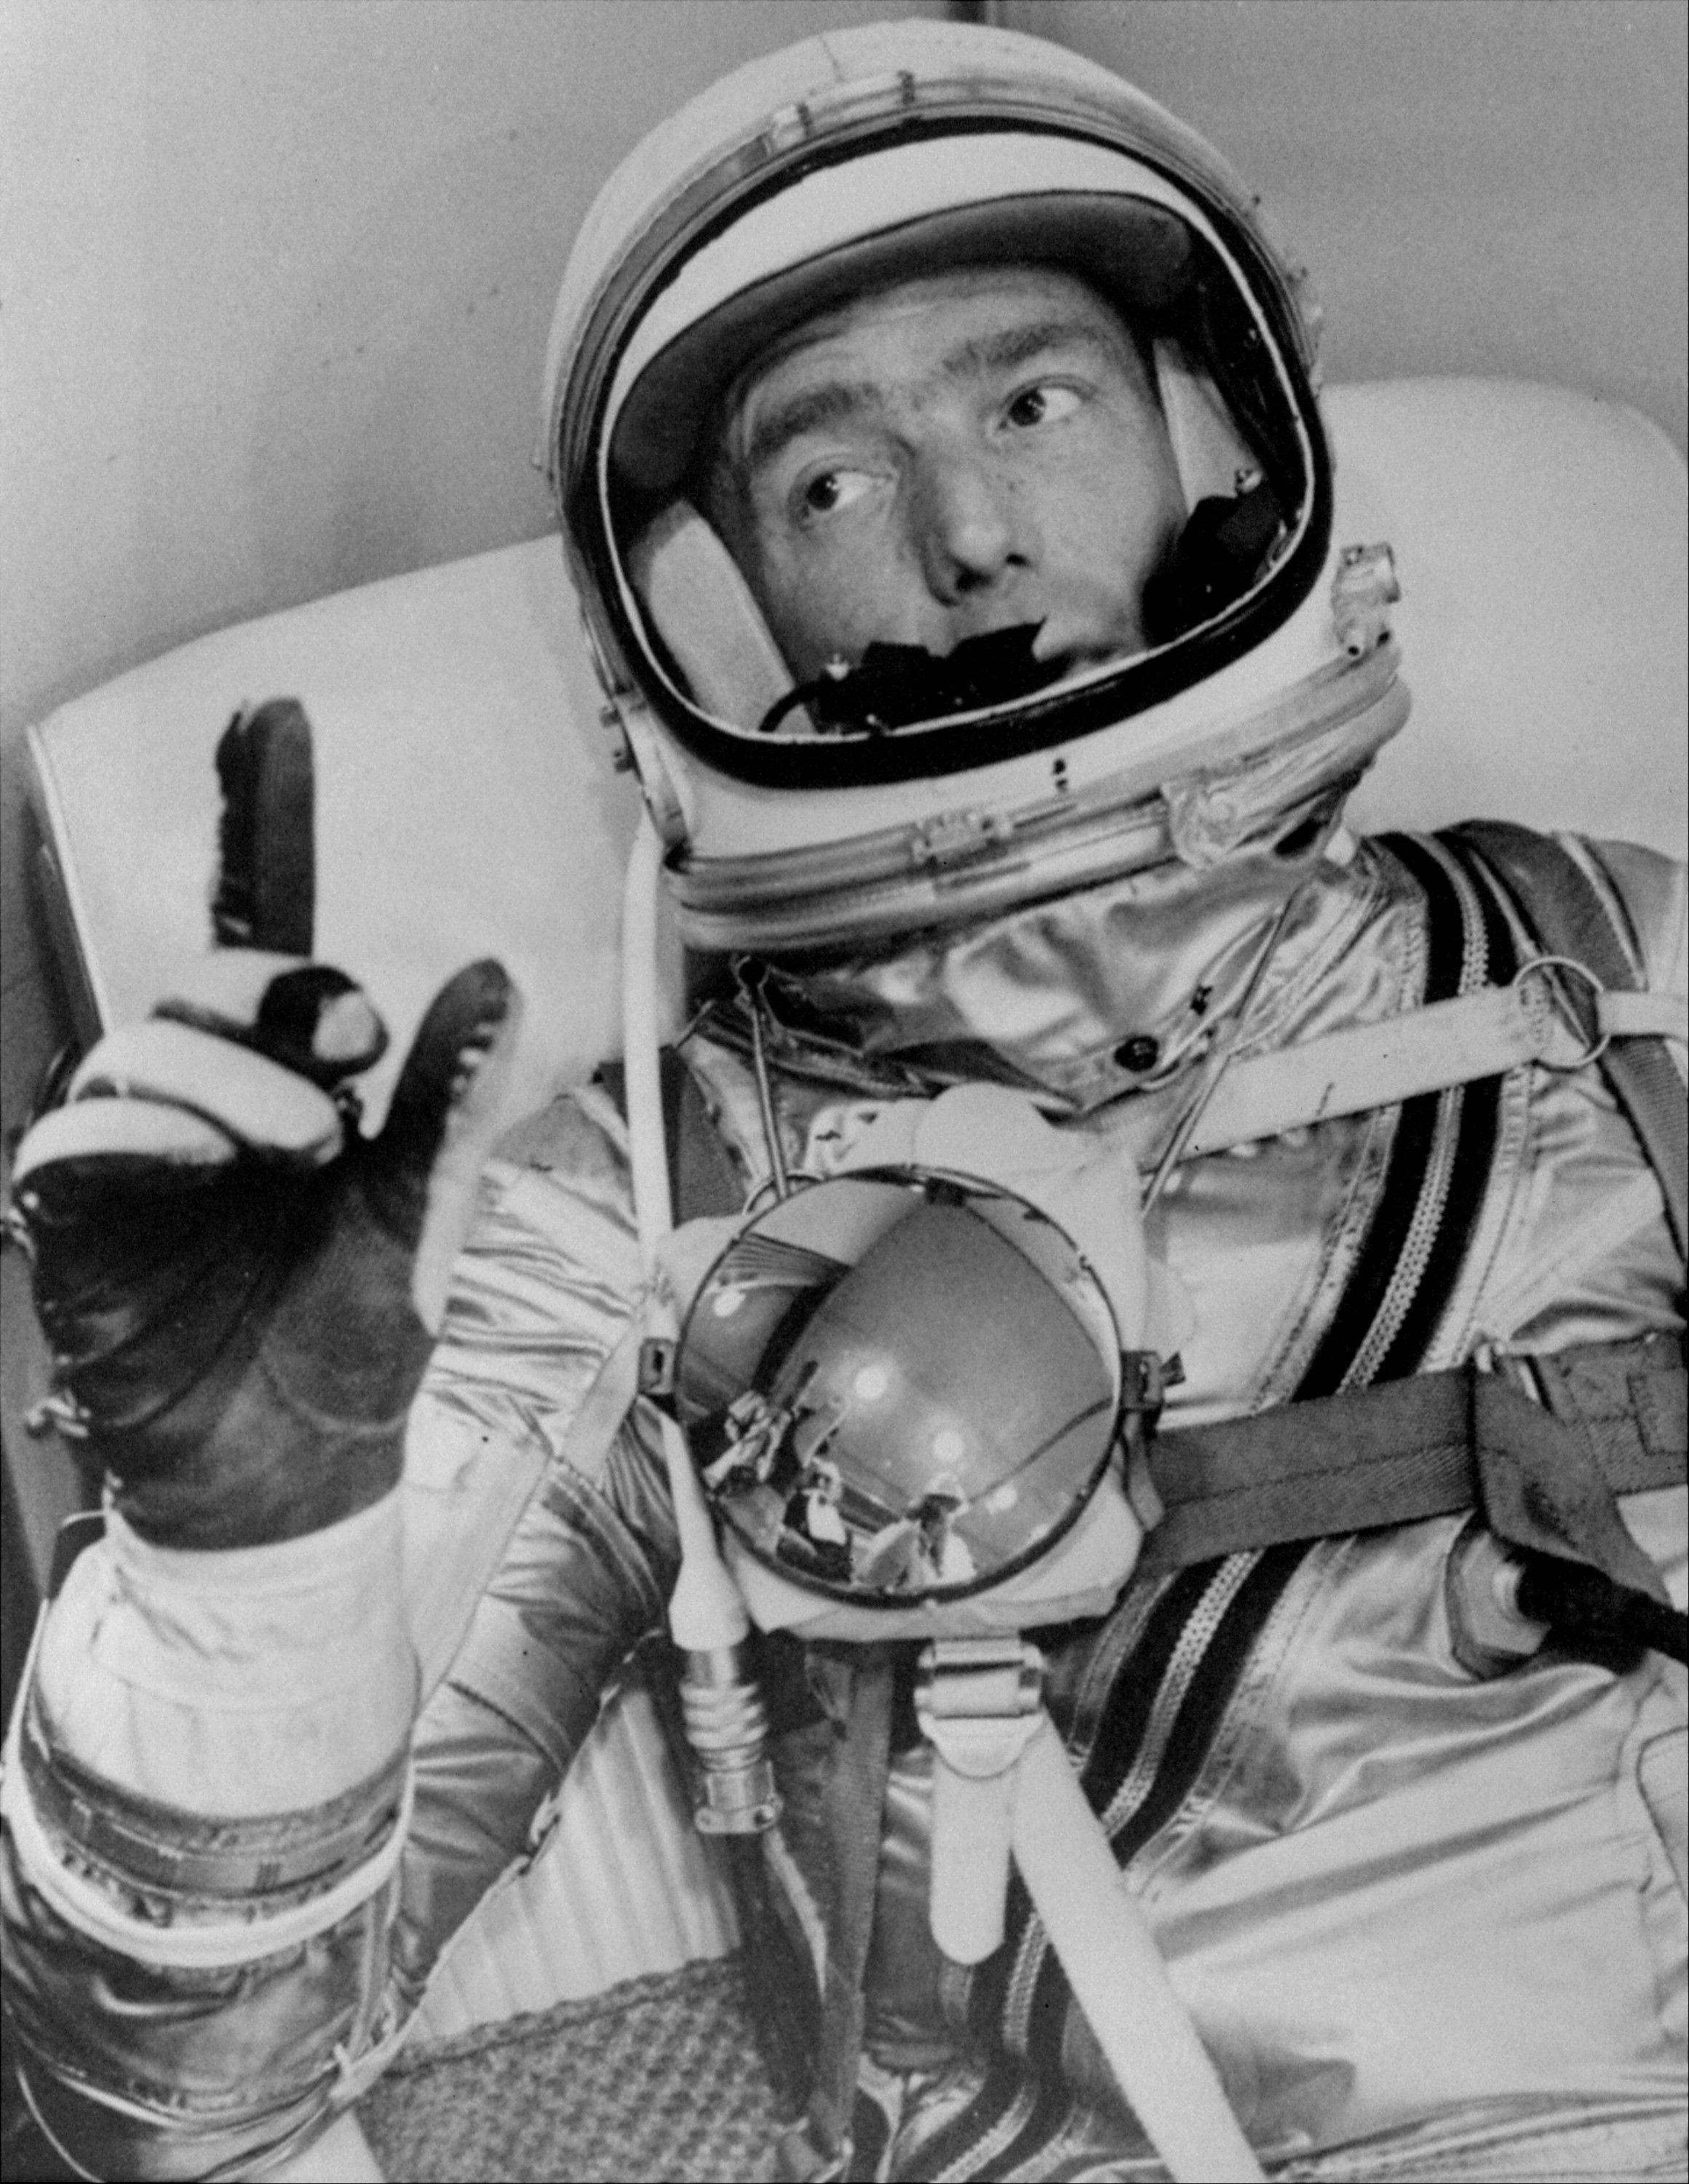 Astronaut Scott Carpenter gestures with one hand after donning his space suit in Hangar S prior to being shot into orbit at Cape Canaveral, Fla.